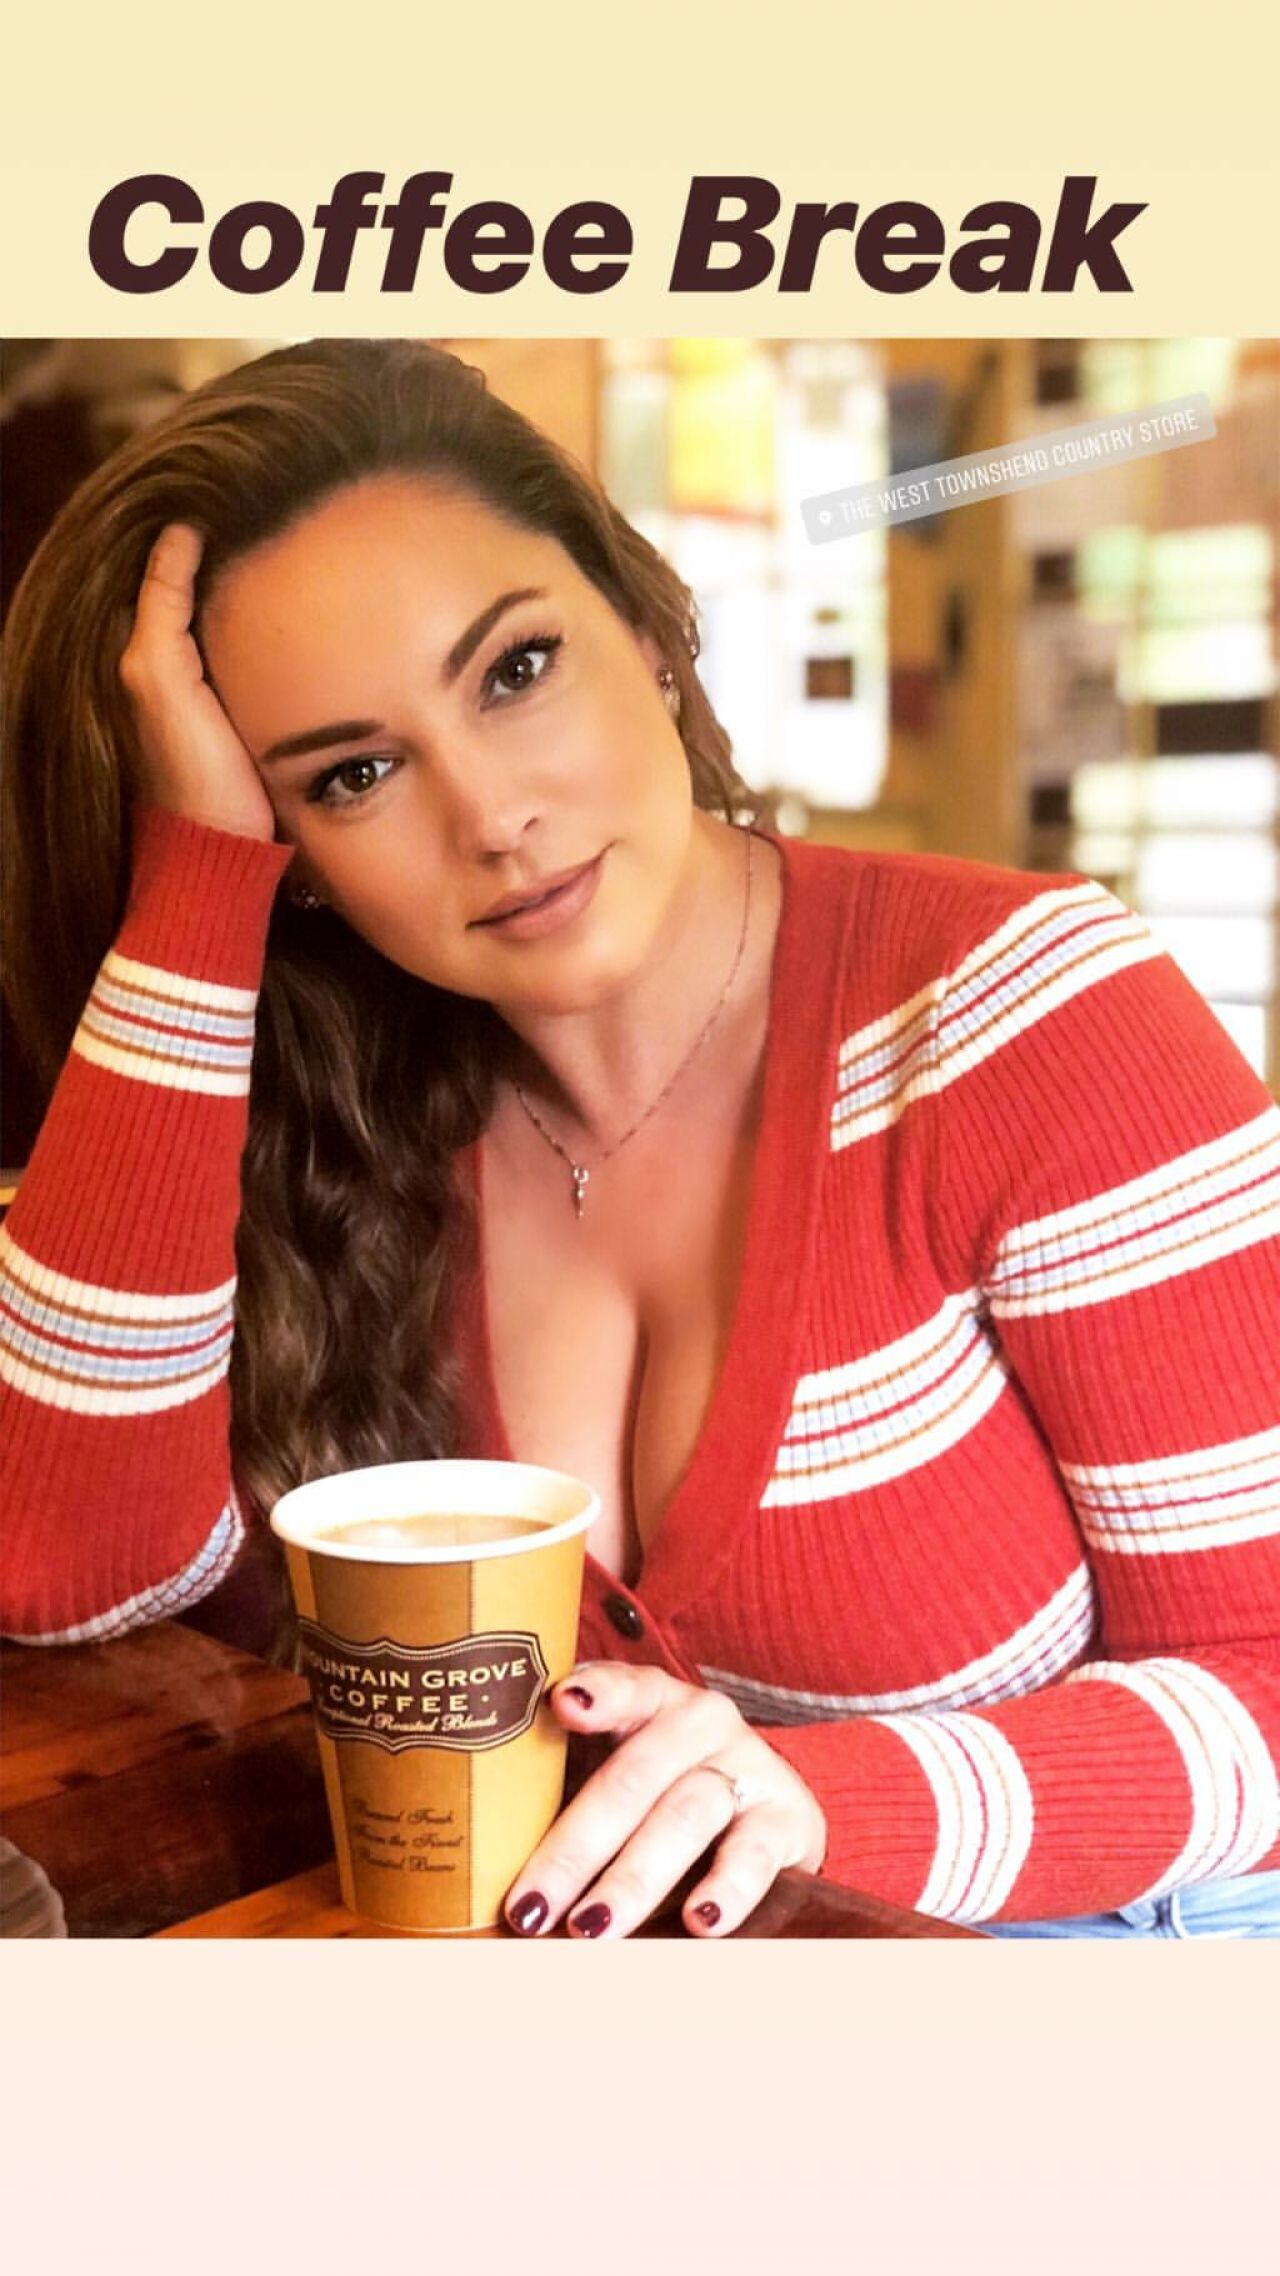 kelly-brook-personal-pics-12-31-2018-21